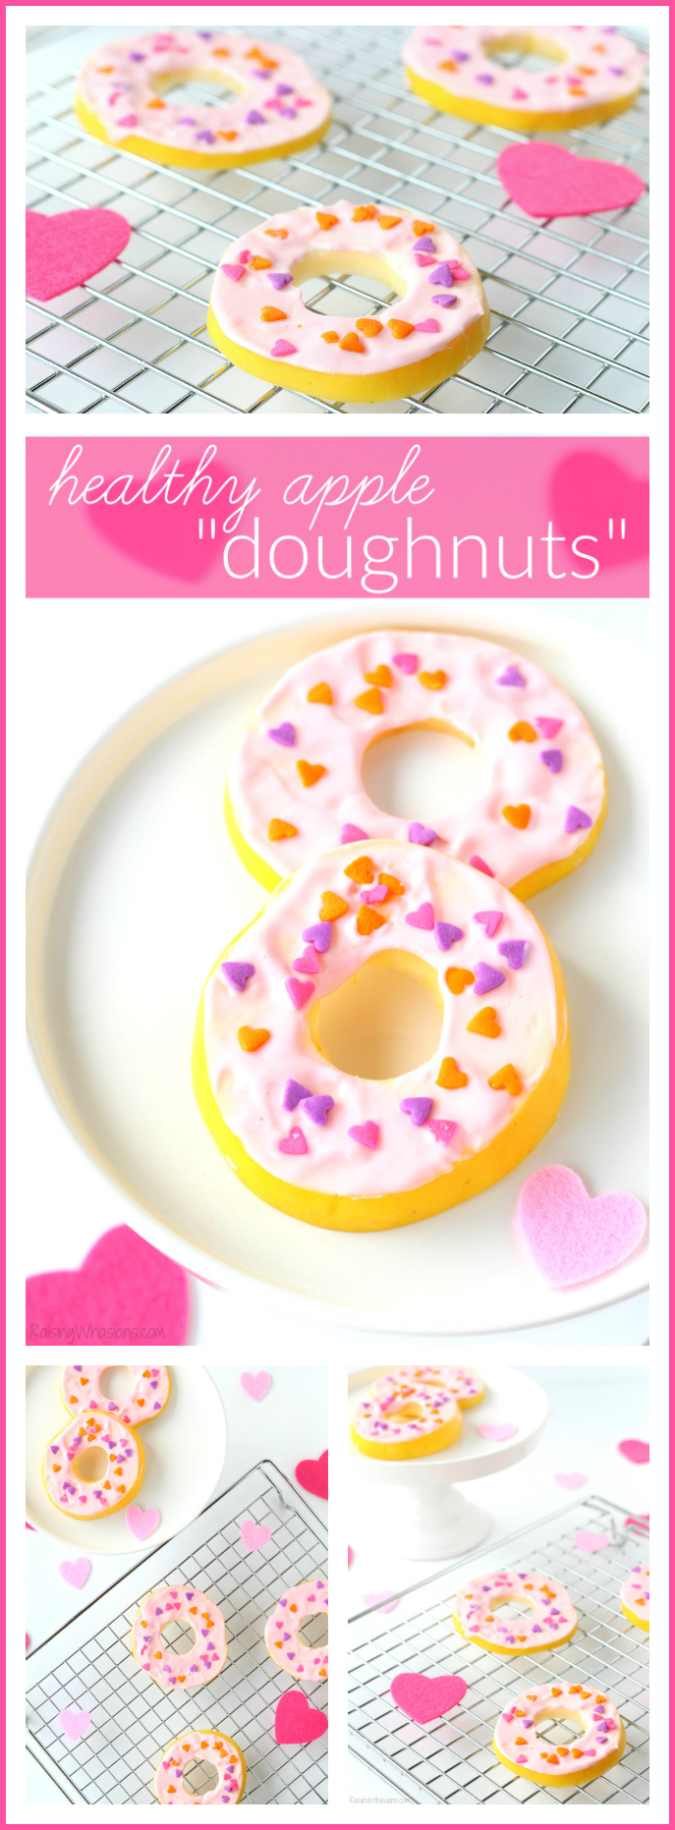 Healthy apple doughnuts Valentine's day pinterest